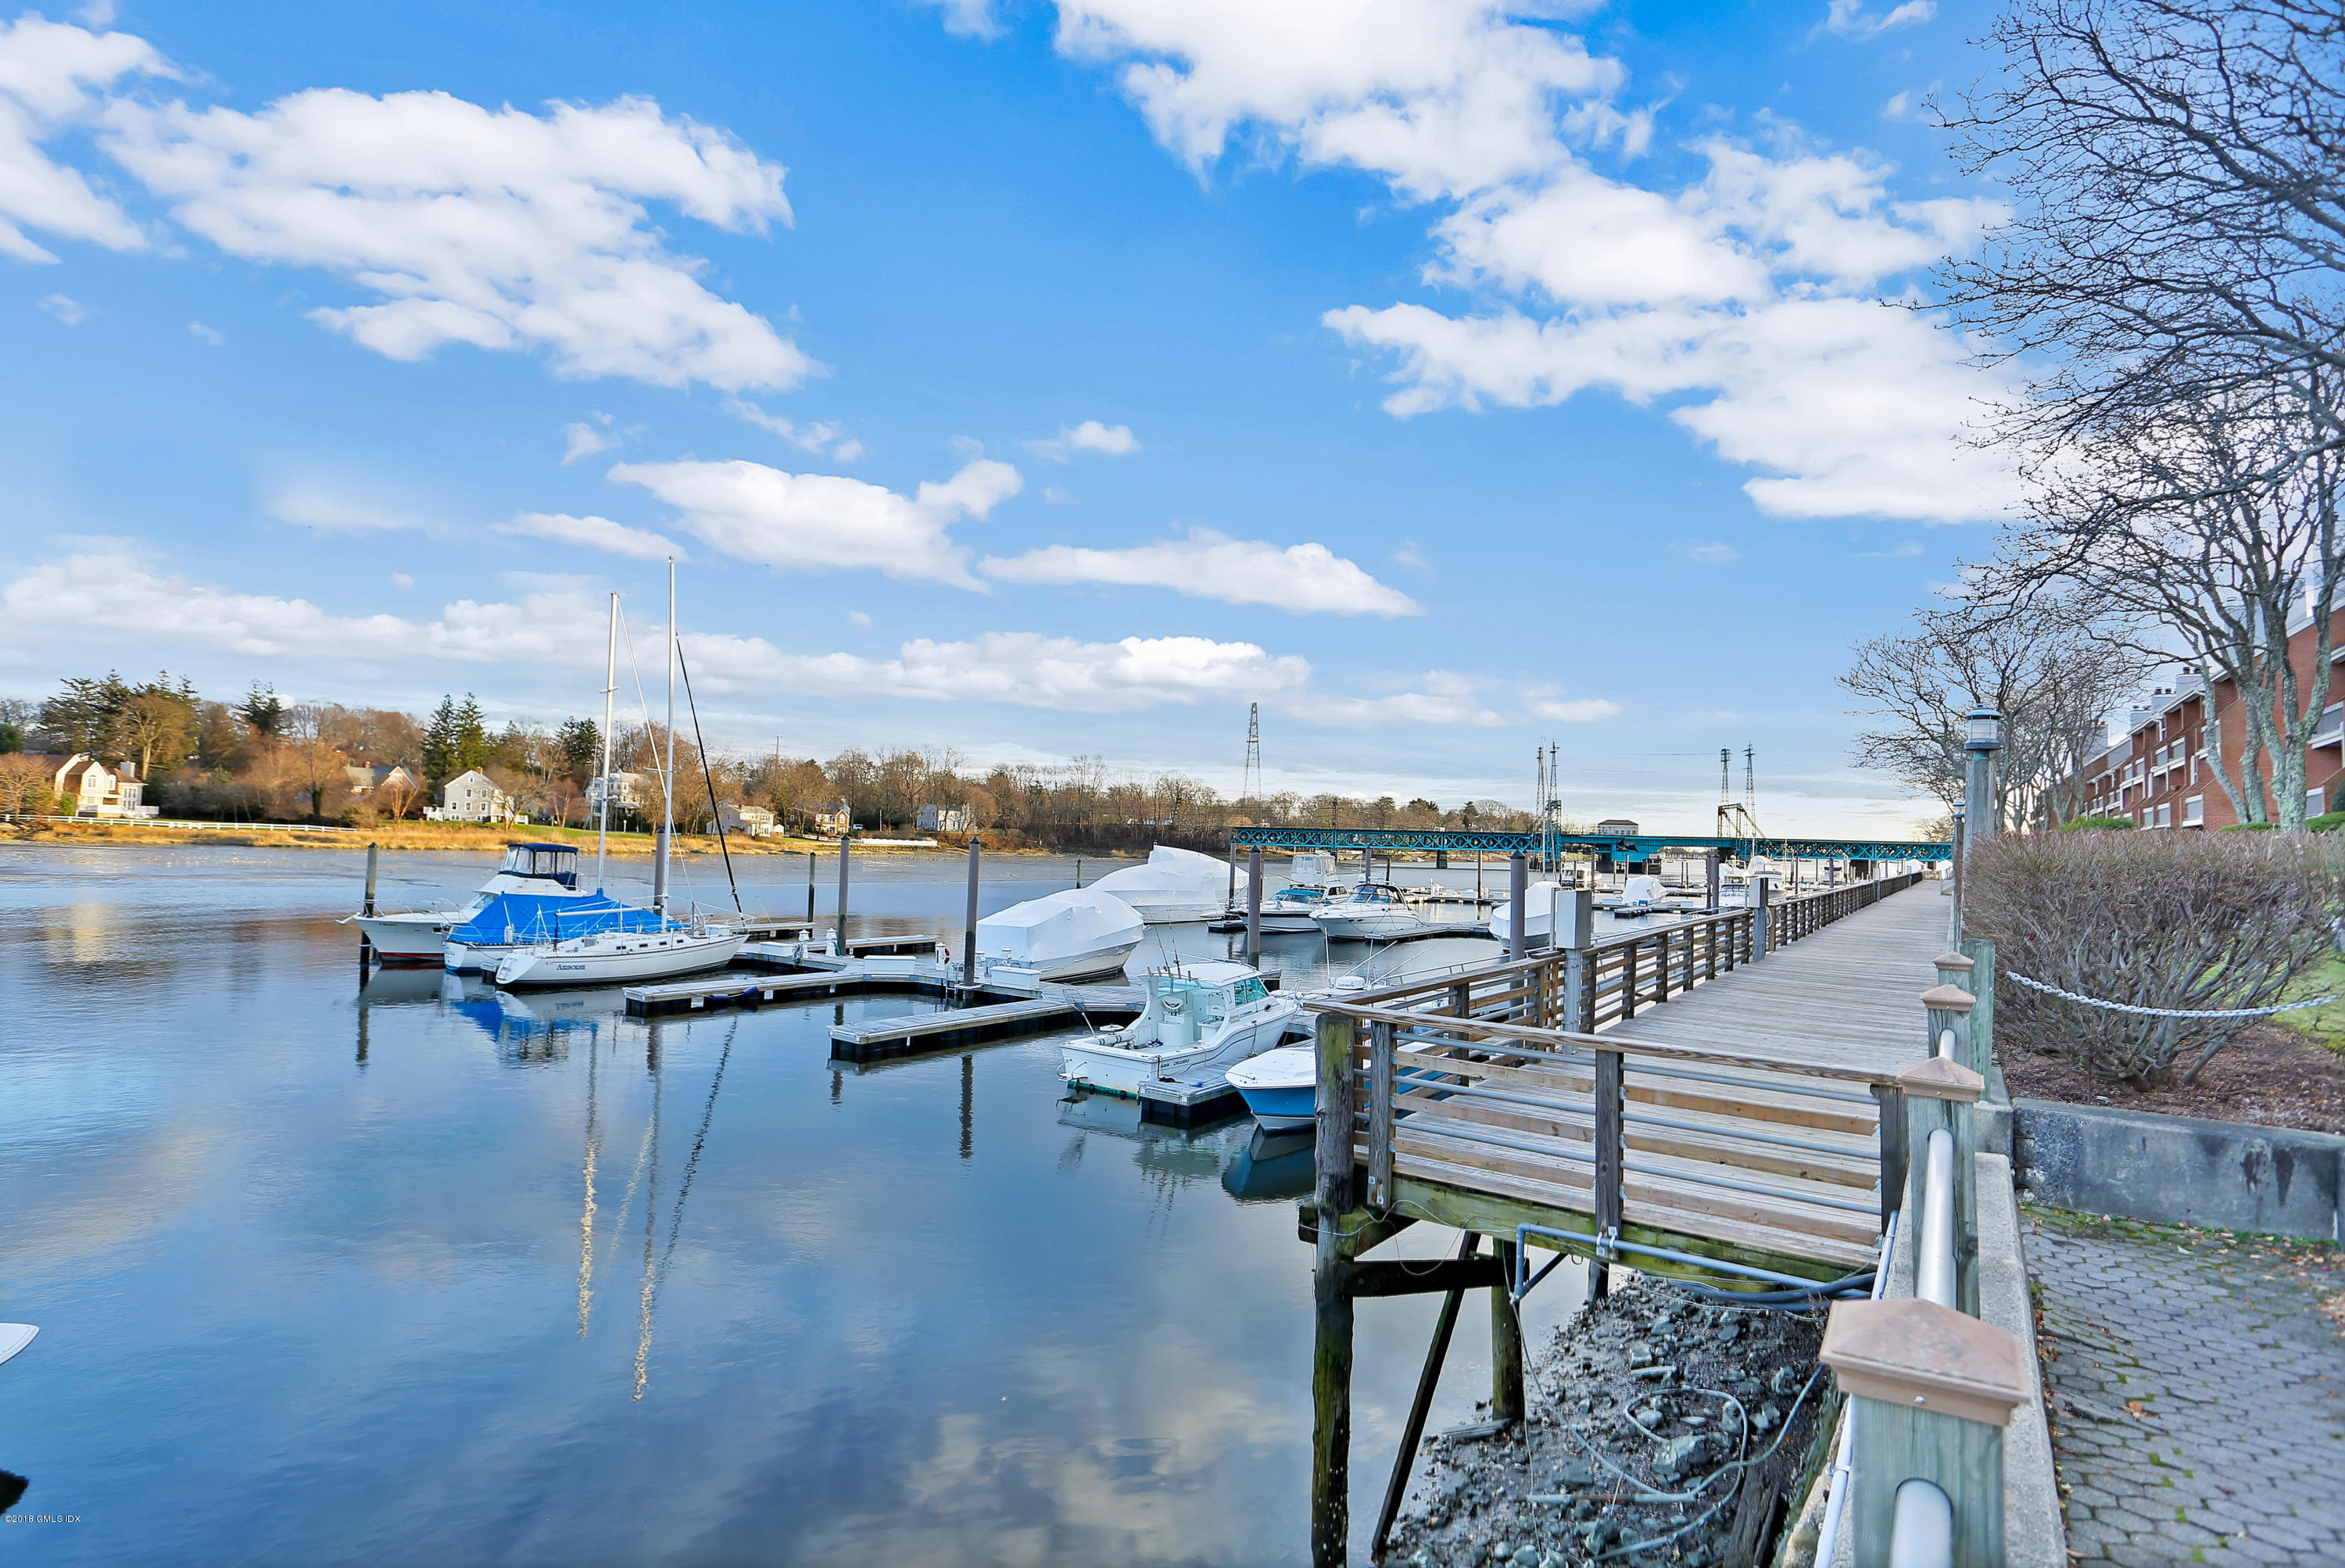 7 River Road,Cos Cob,Connecticut 06807,2 Bedrooms Bedrooms,2 BathroomsBathrooms,Condominium,River,105062